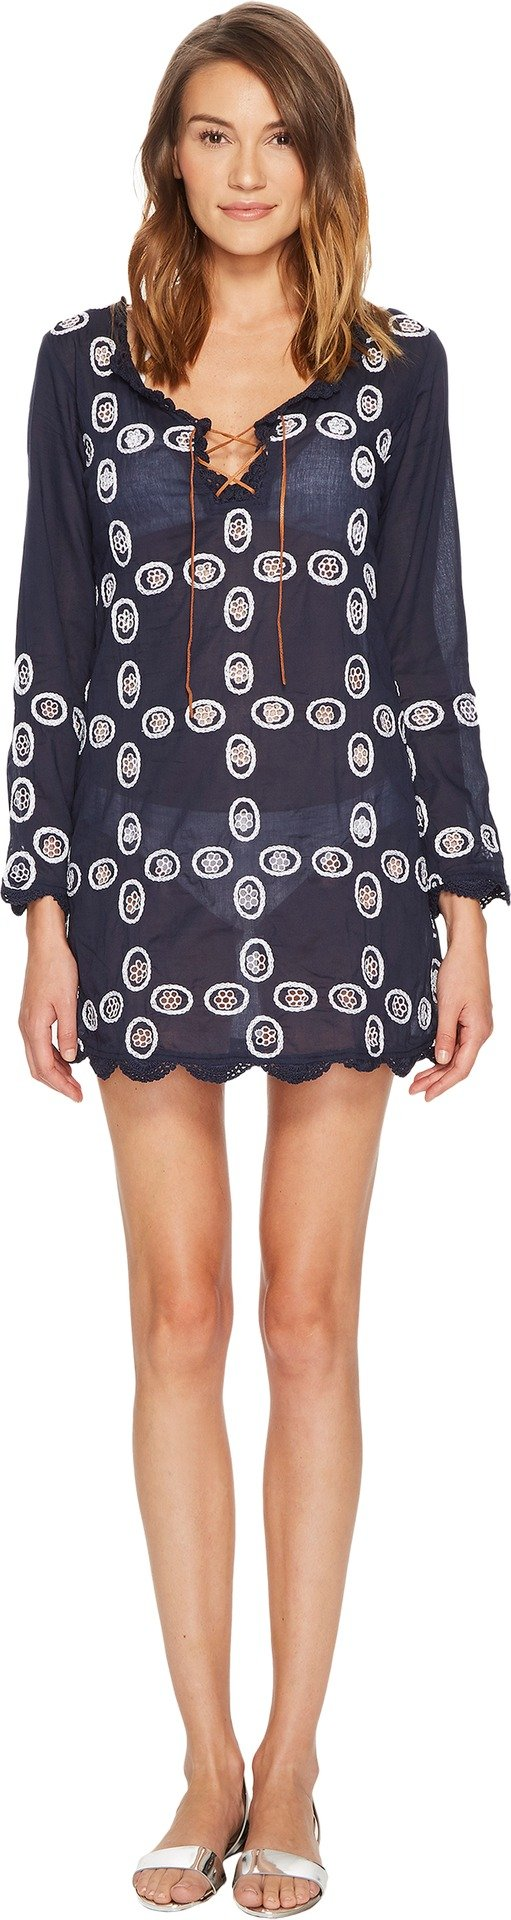 Letarte Women's Doily Dress Navy Medium by Letarte